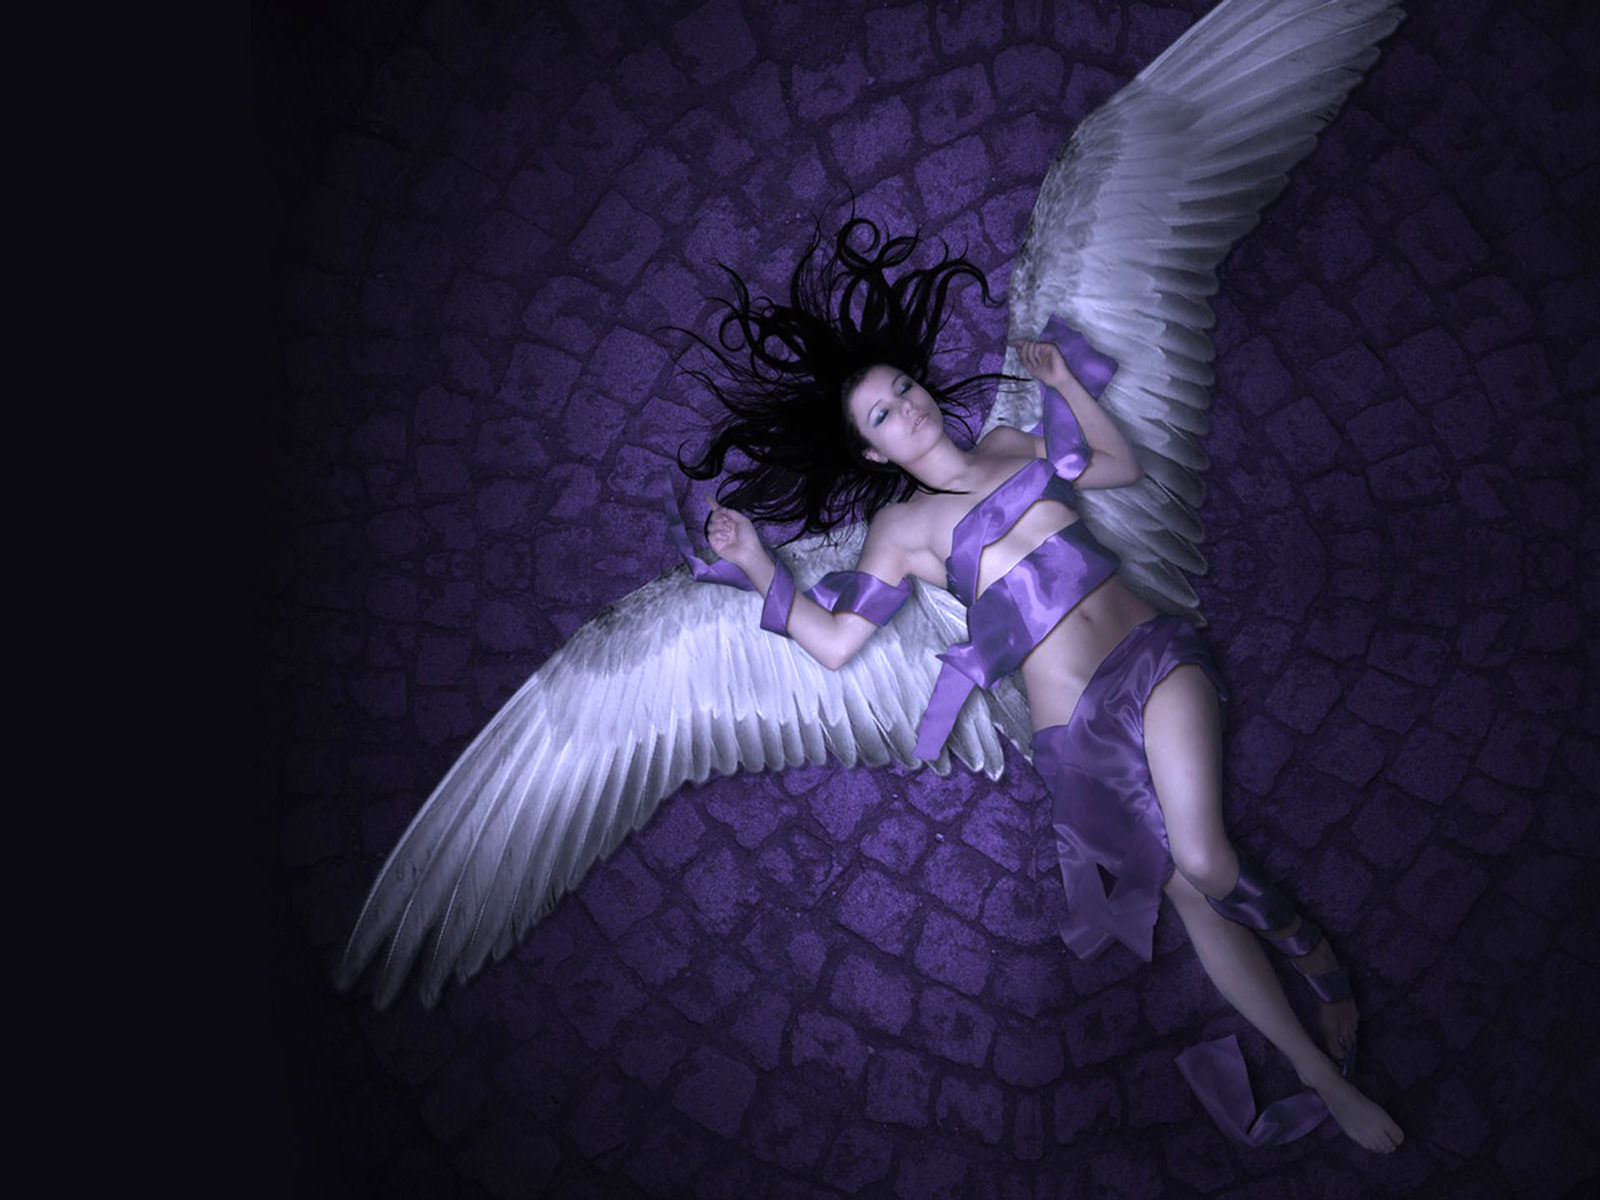 Fallen Angel Computer Wallpapers Desktop Backgrounds 1600x1200